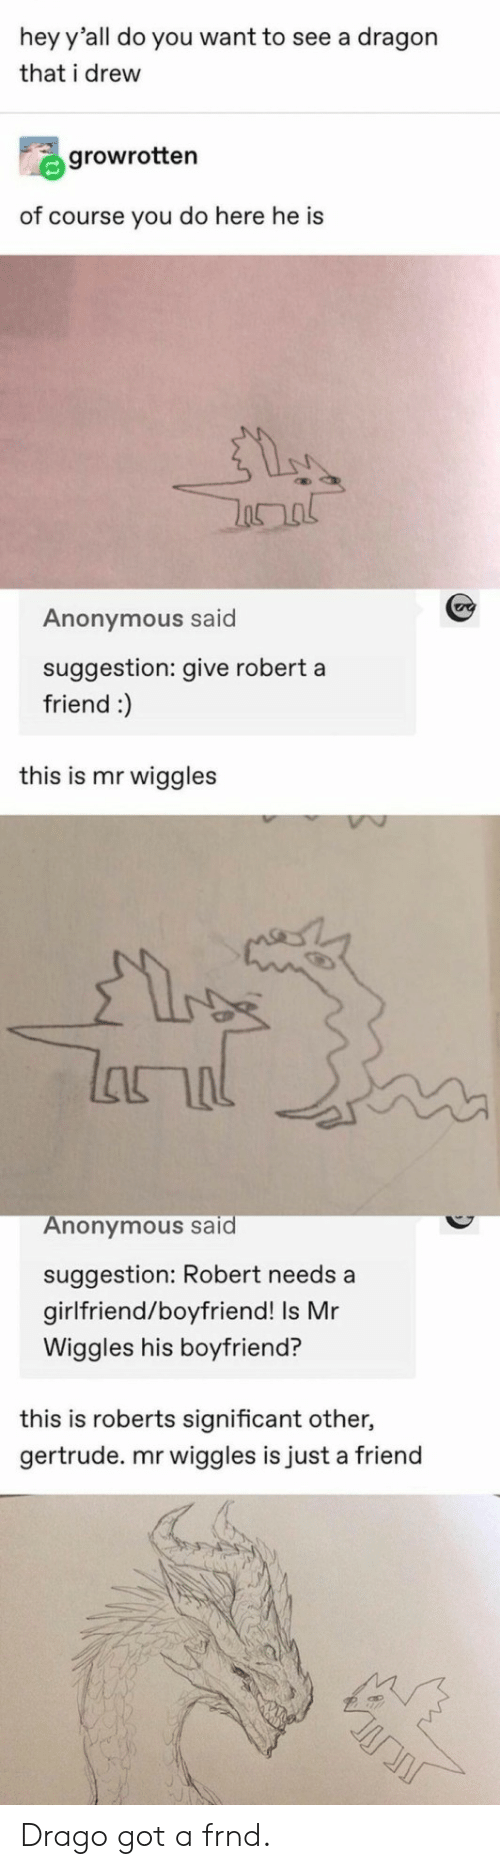 roberts: hey y'all do you want to see a dragon  that i drew  growrotten  of course you do here he is  Anonymous said  suggestion: give robert a  friend :)  this is mr wiggles  lanal  Anonymous said  suggestion: Robert needs a  girlfriend/boyfriend! Is Mr  Wiggles his boyfriend?  this is roberts significant other,  gertrude. mr wiggles is just a friend Drago got a frnd.